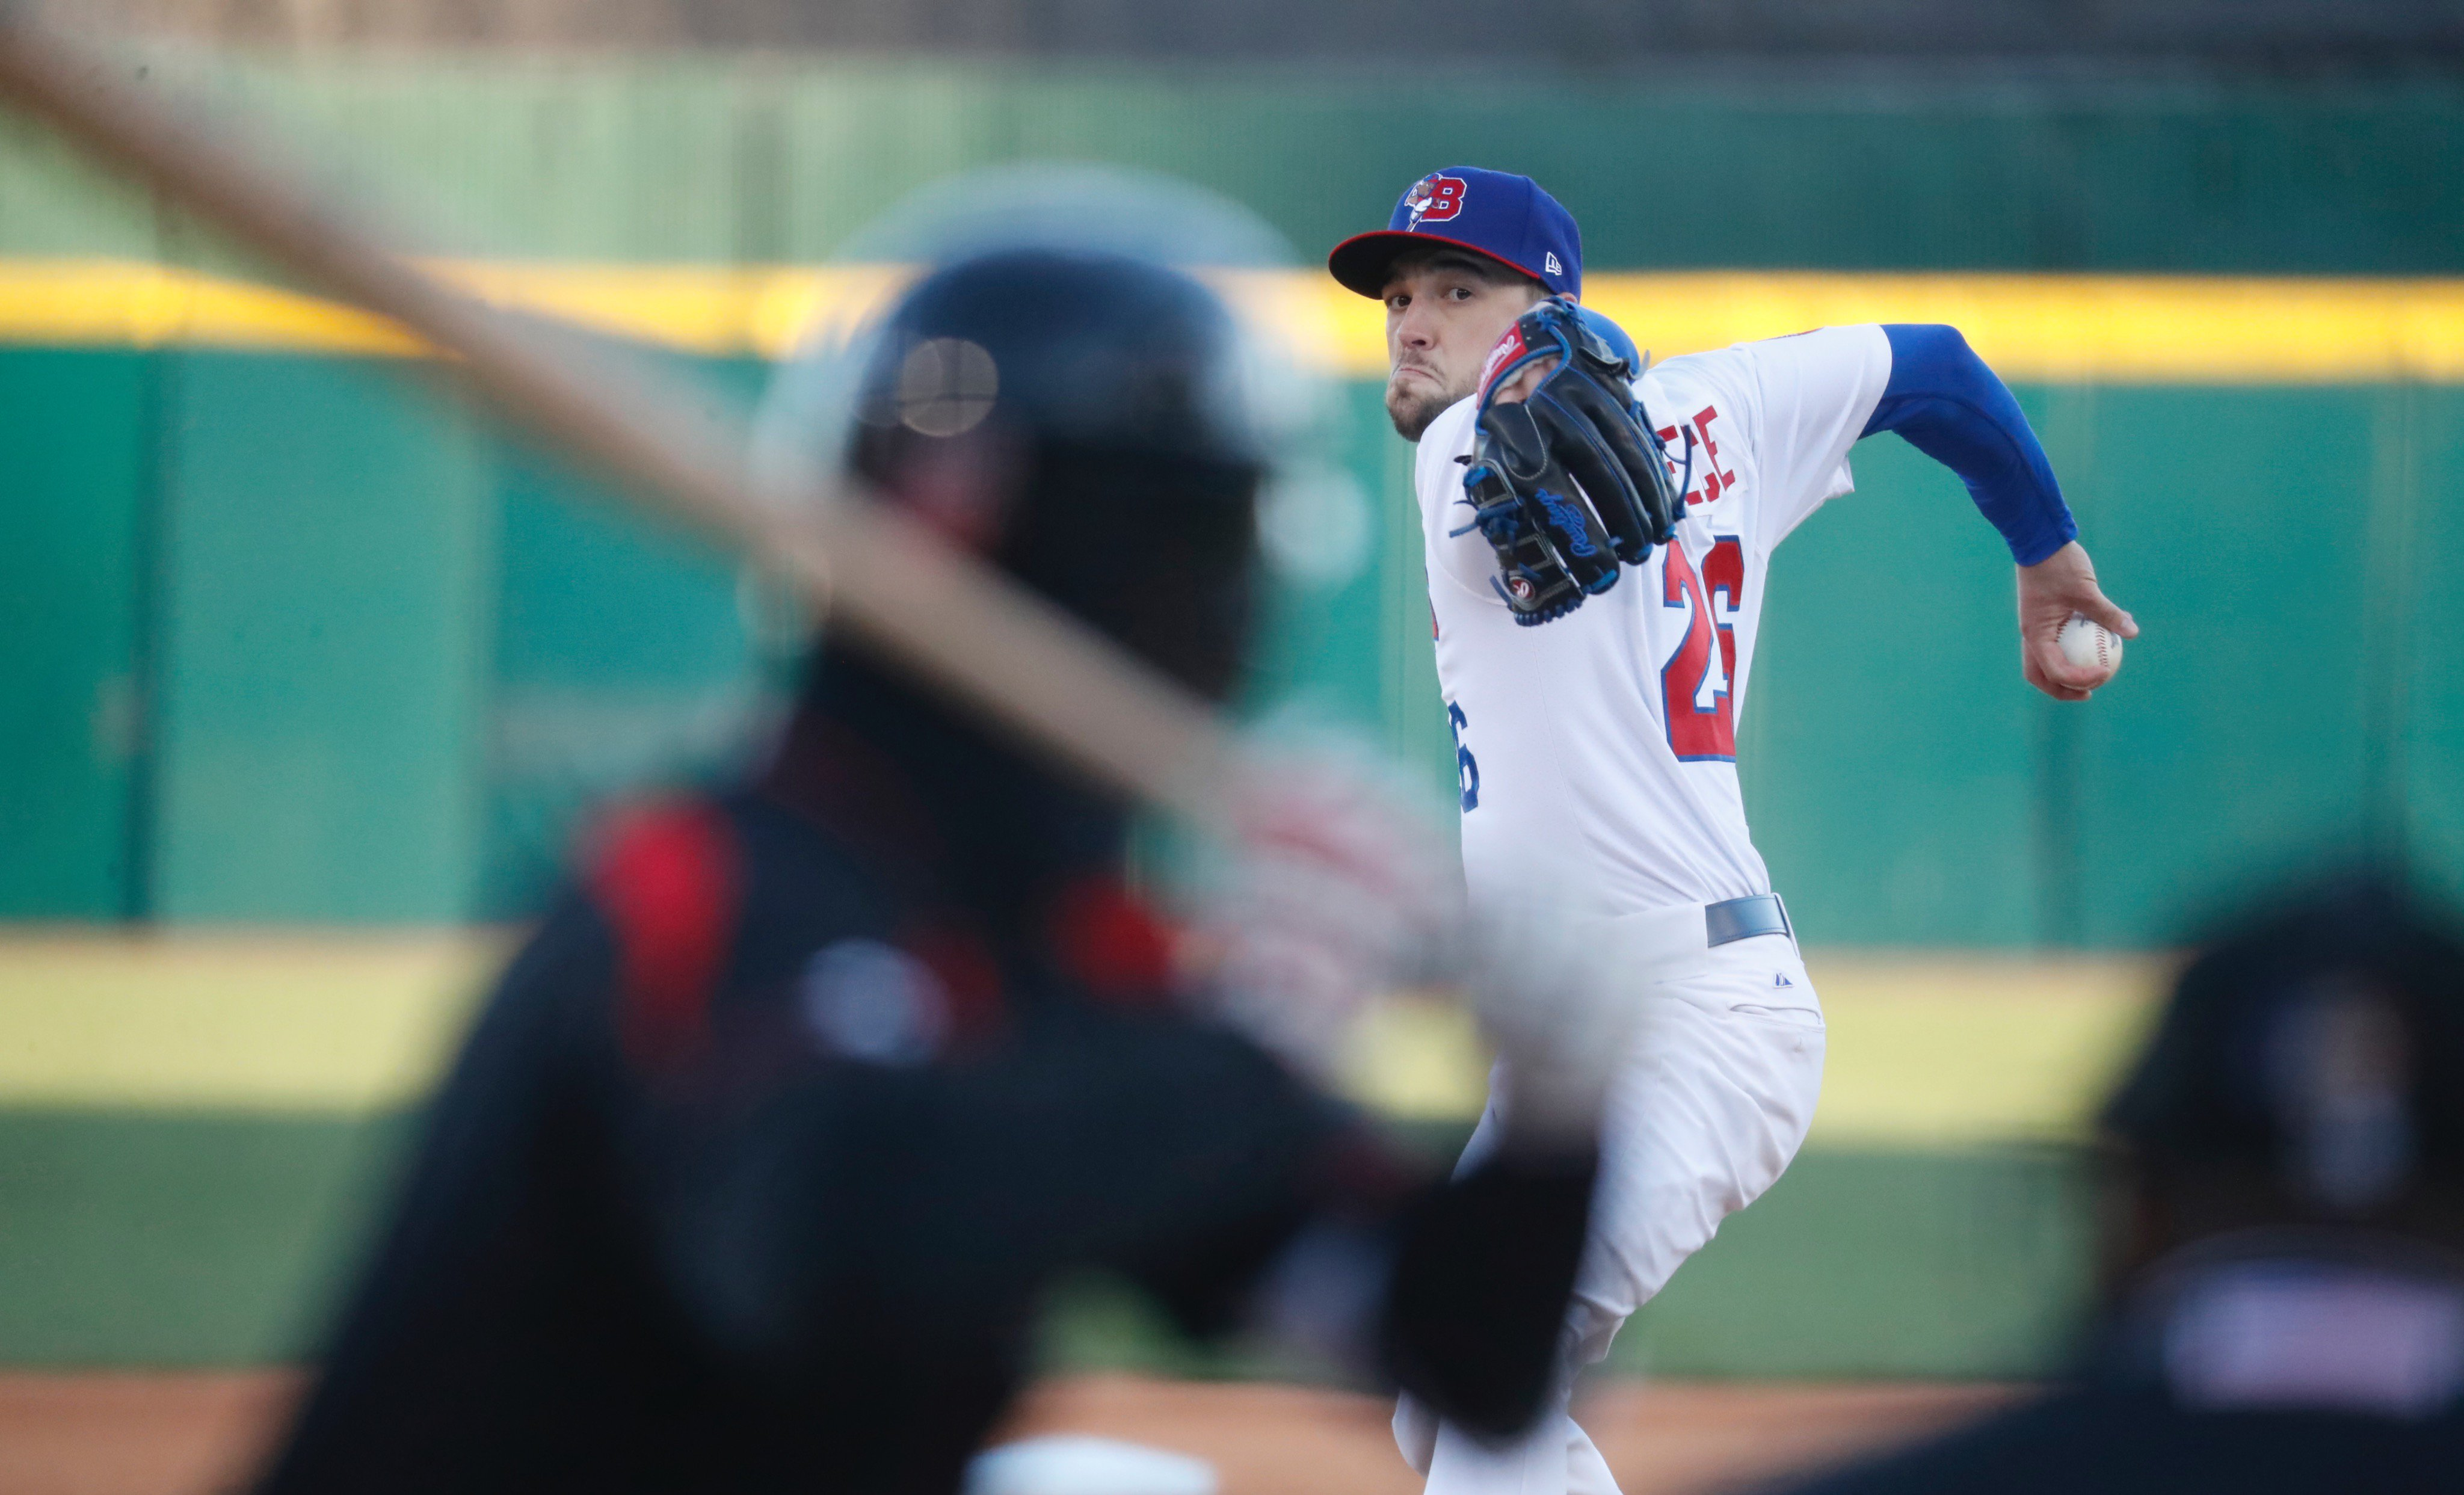 Bisons starter Casey Lawrence threw five innings in a 4-1 win over Rochester. (Harry Scull Jr./Buffalo News)